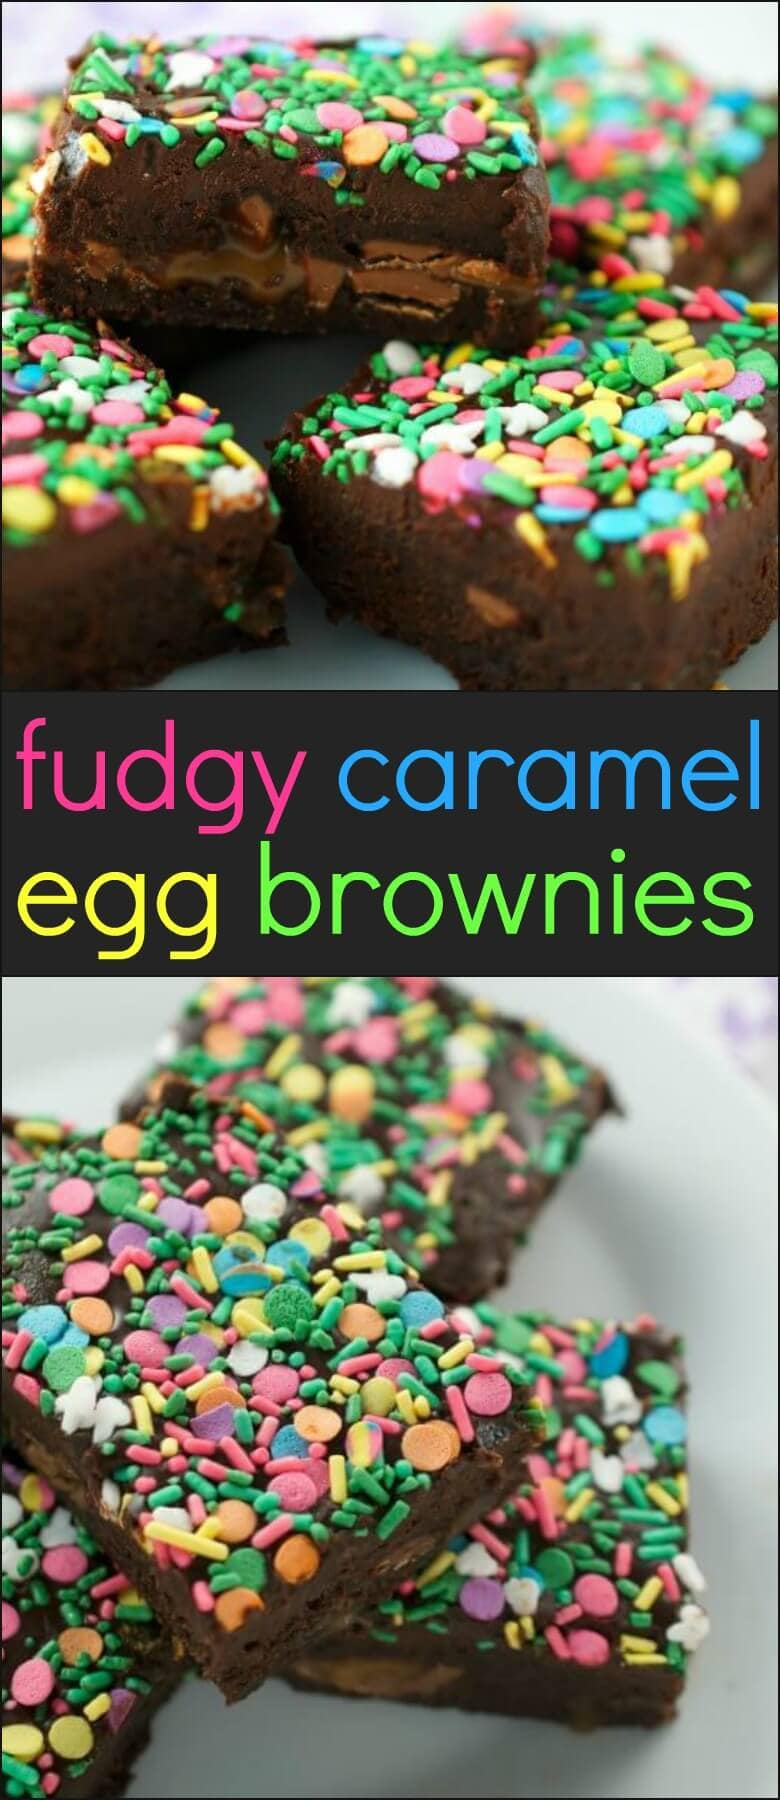 Fudgy Caramel Egg Brownies are a decadent brownie loaded with caramel filled eggs and topped with dark chocolate ganache.